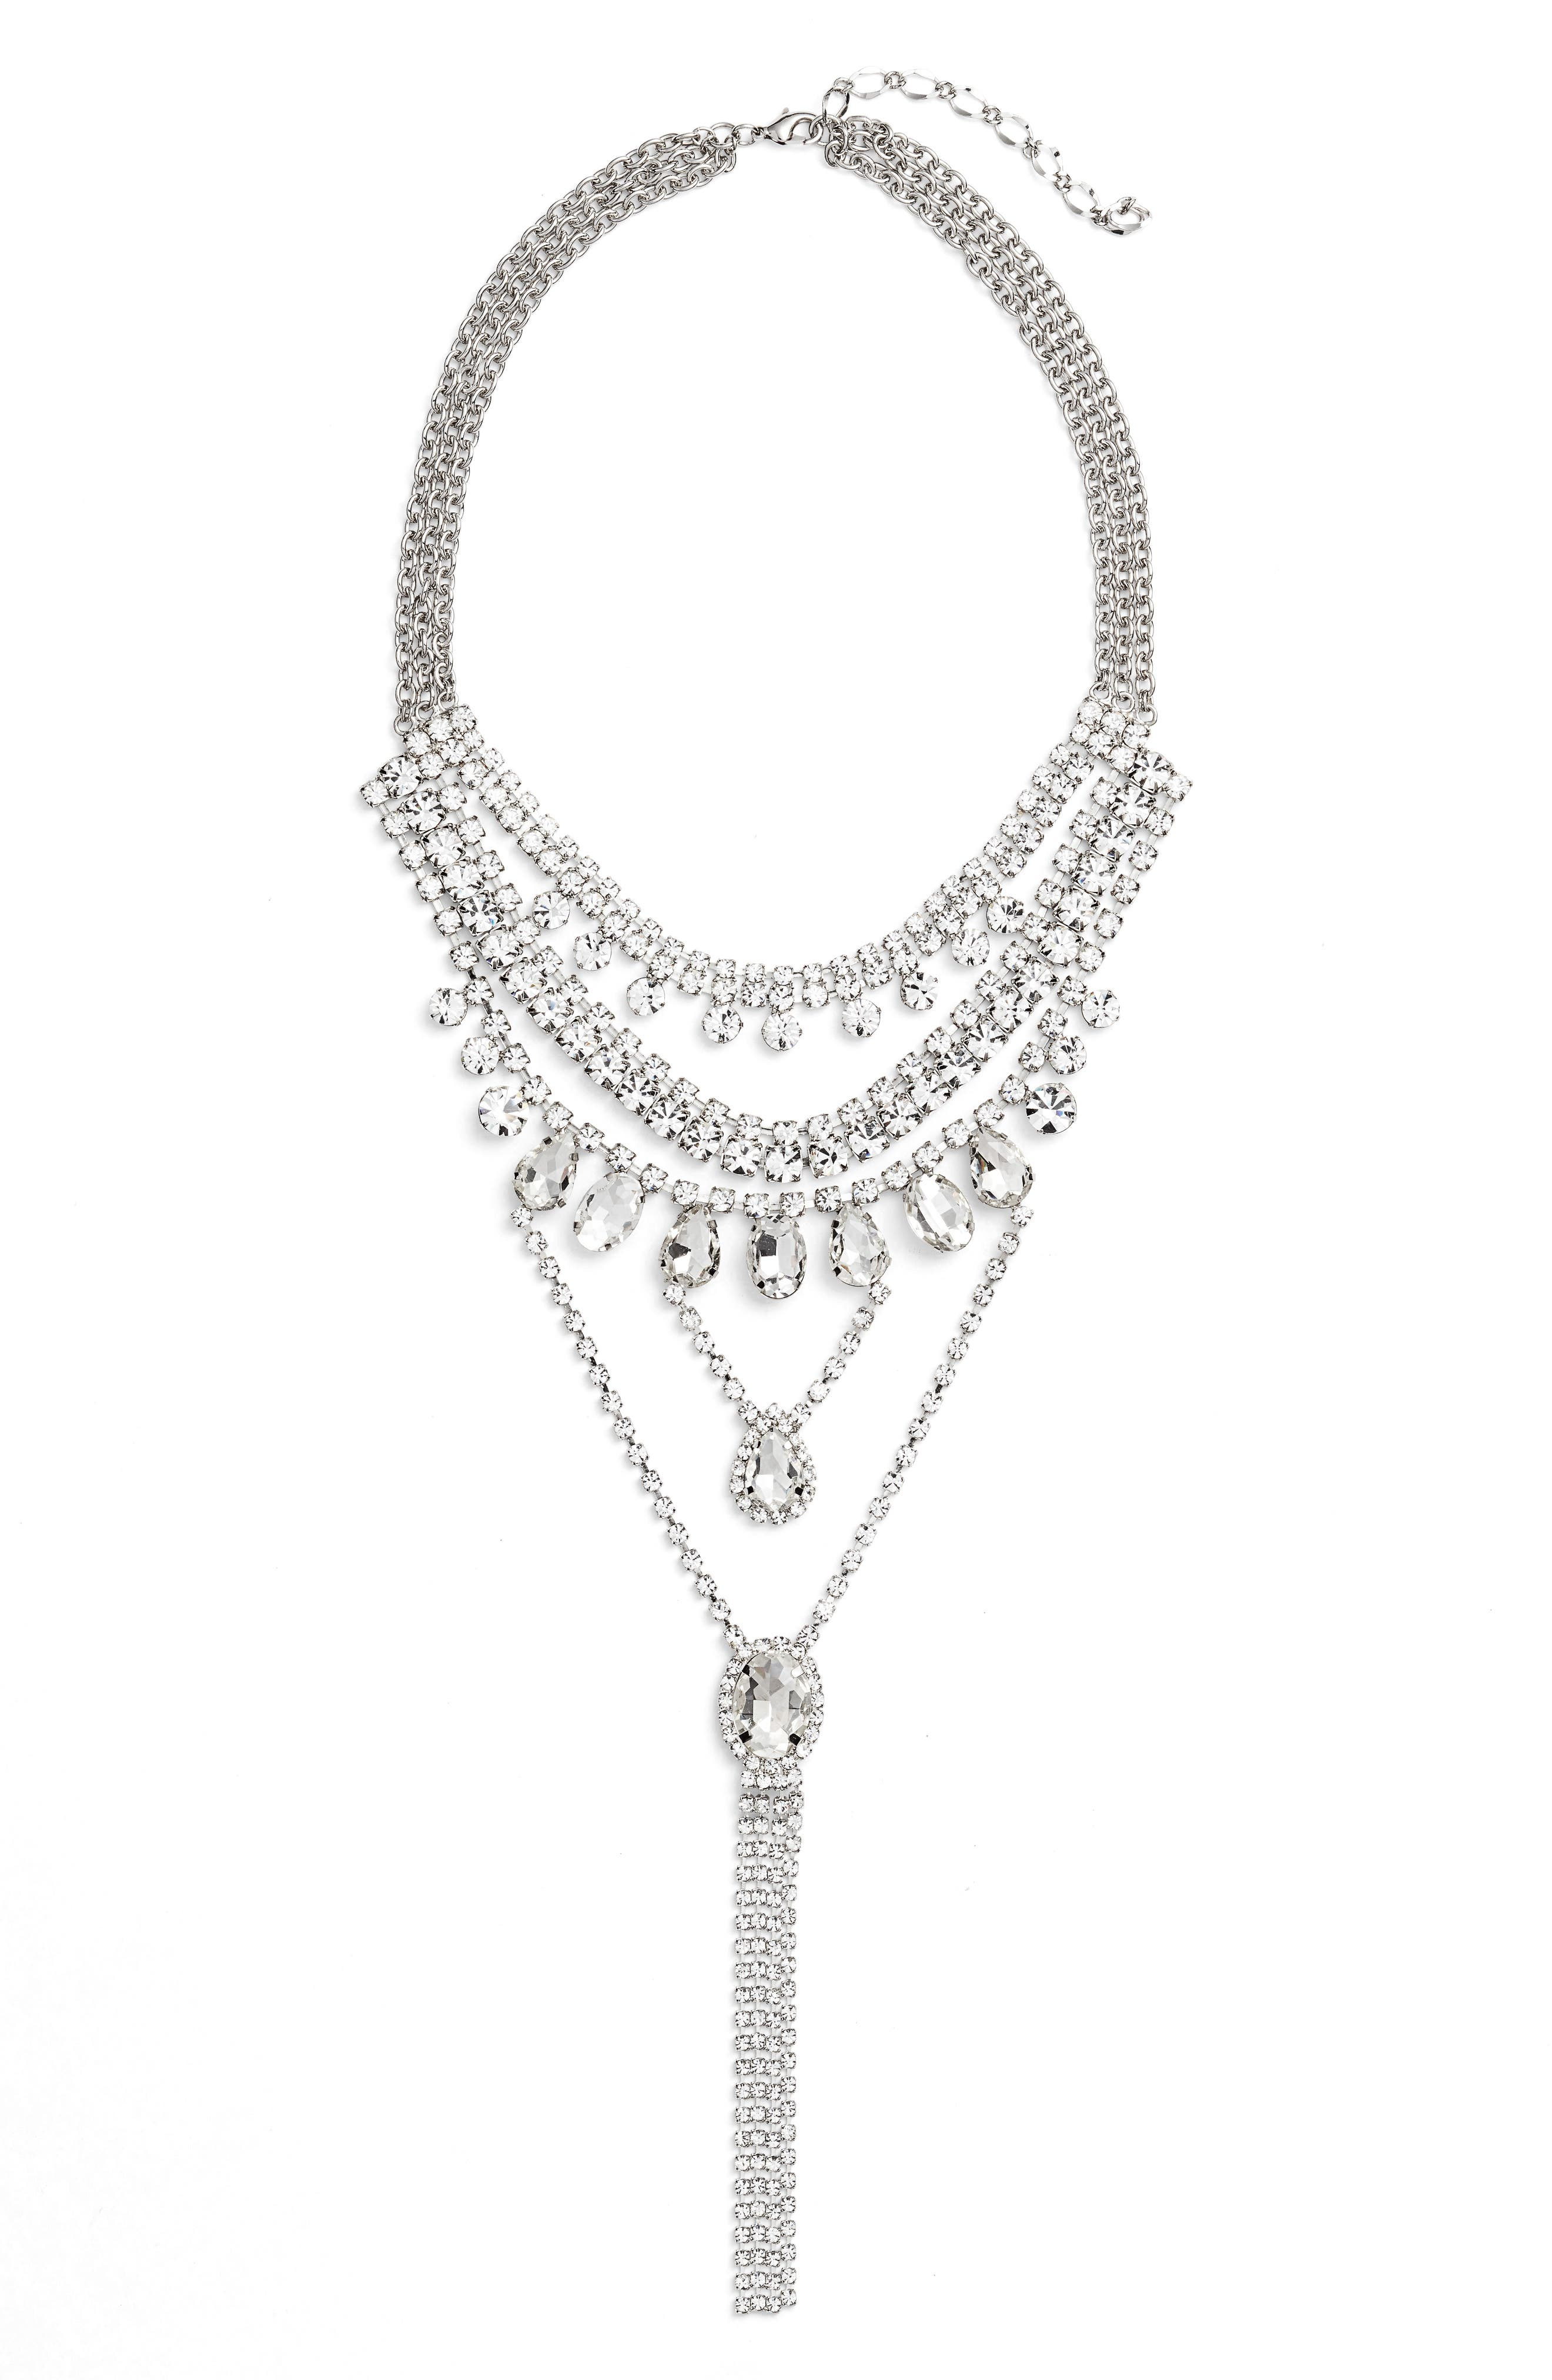 Main Image - CRISTABELLE Multistrand Crystal Necklace